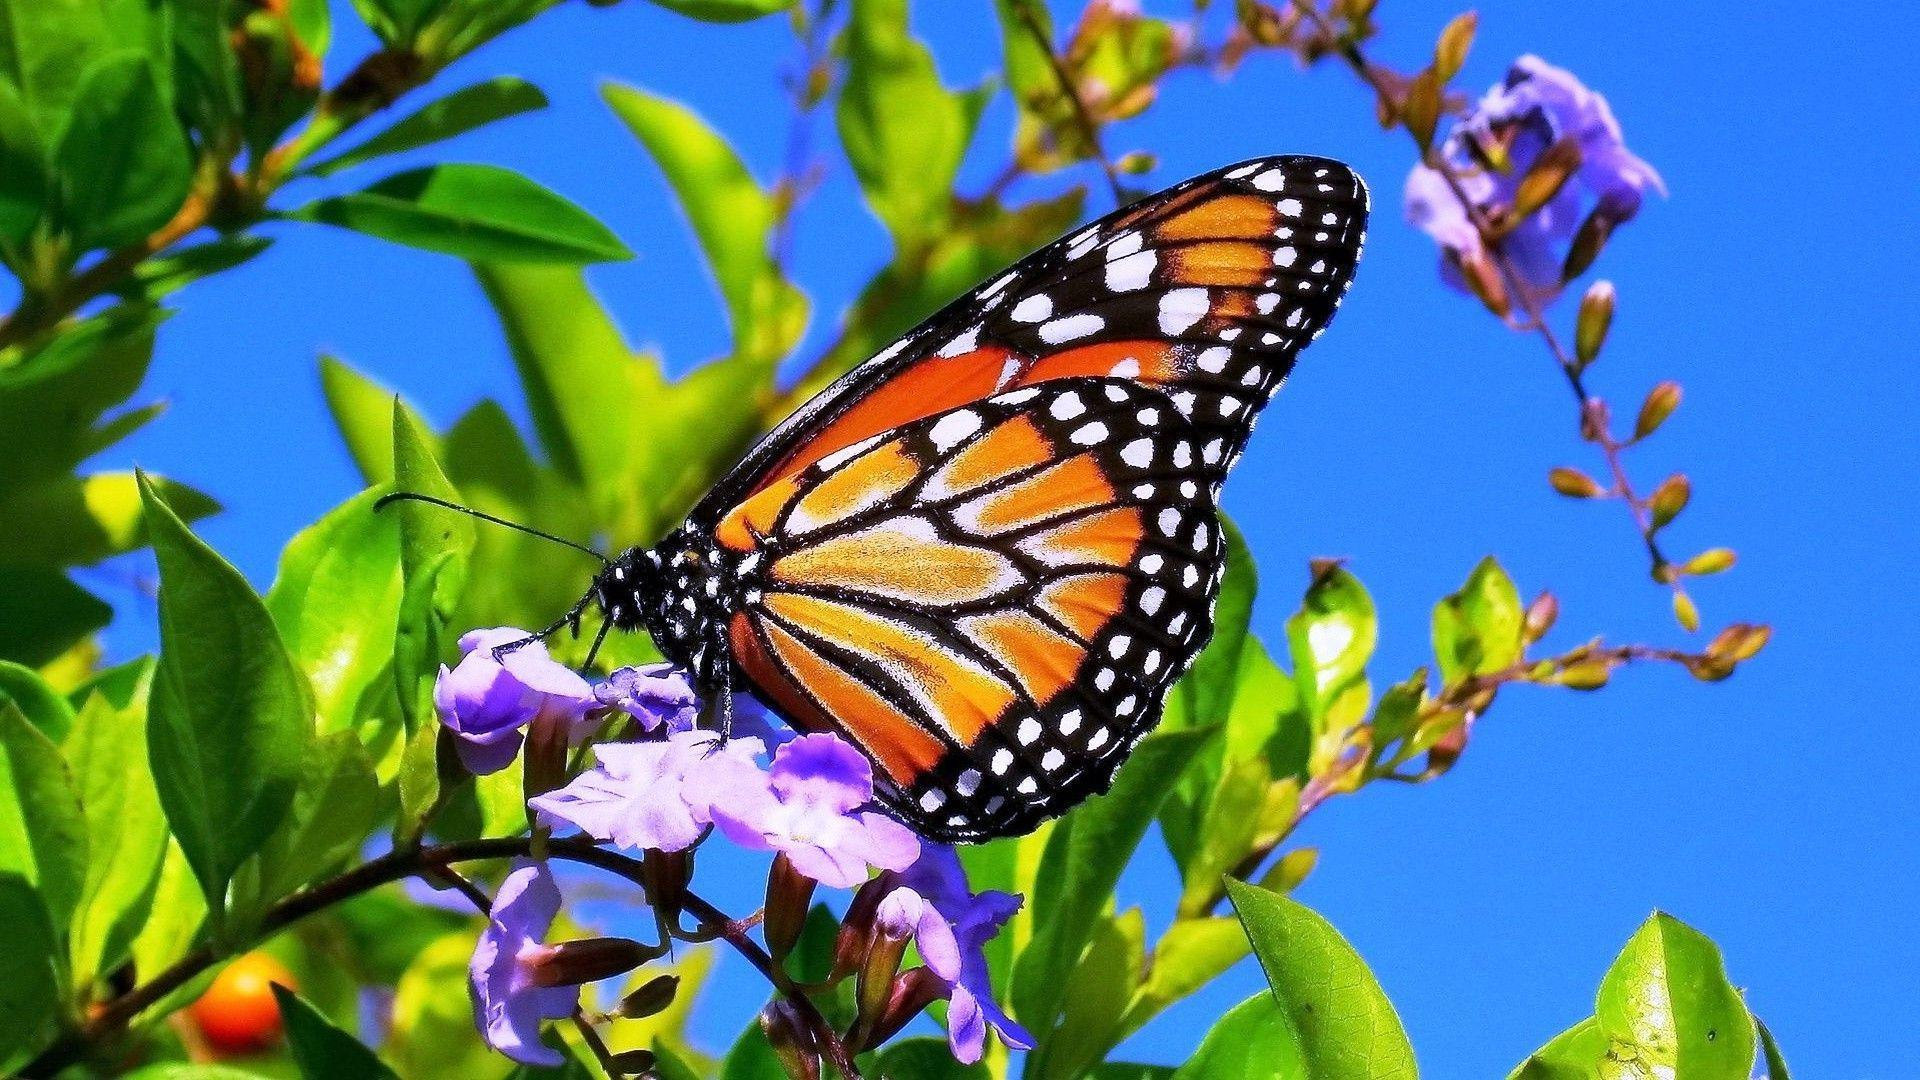 New Butterflies And Flowers Background Images Top Collection Of